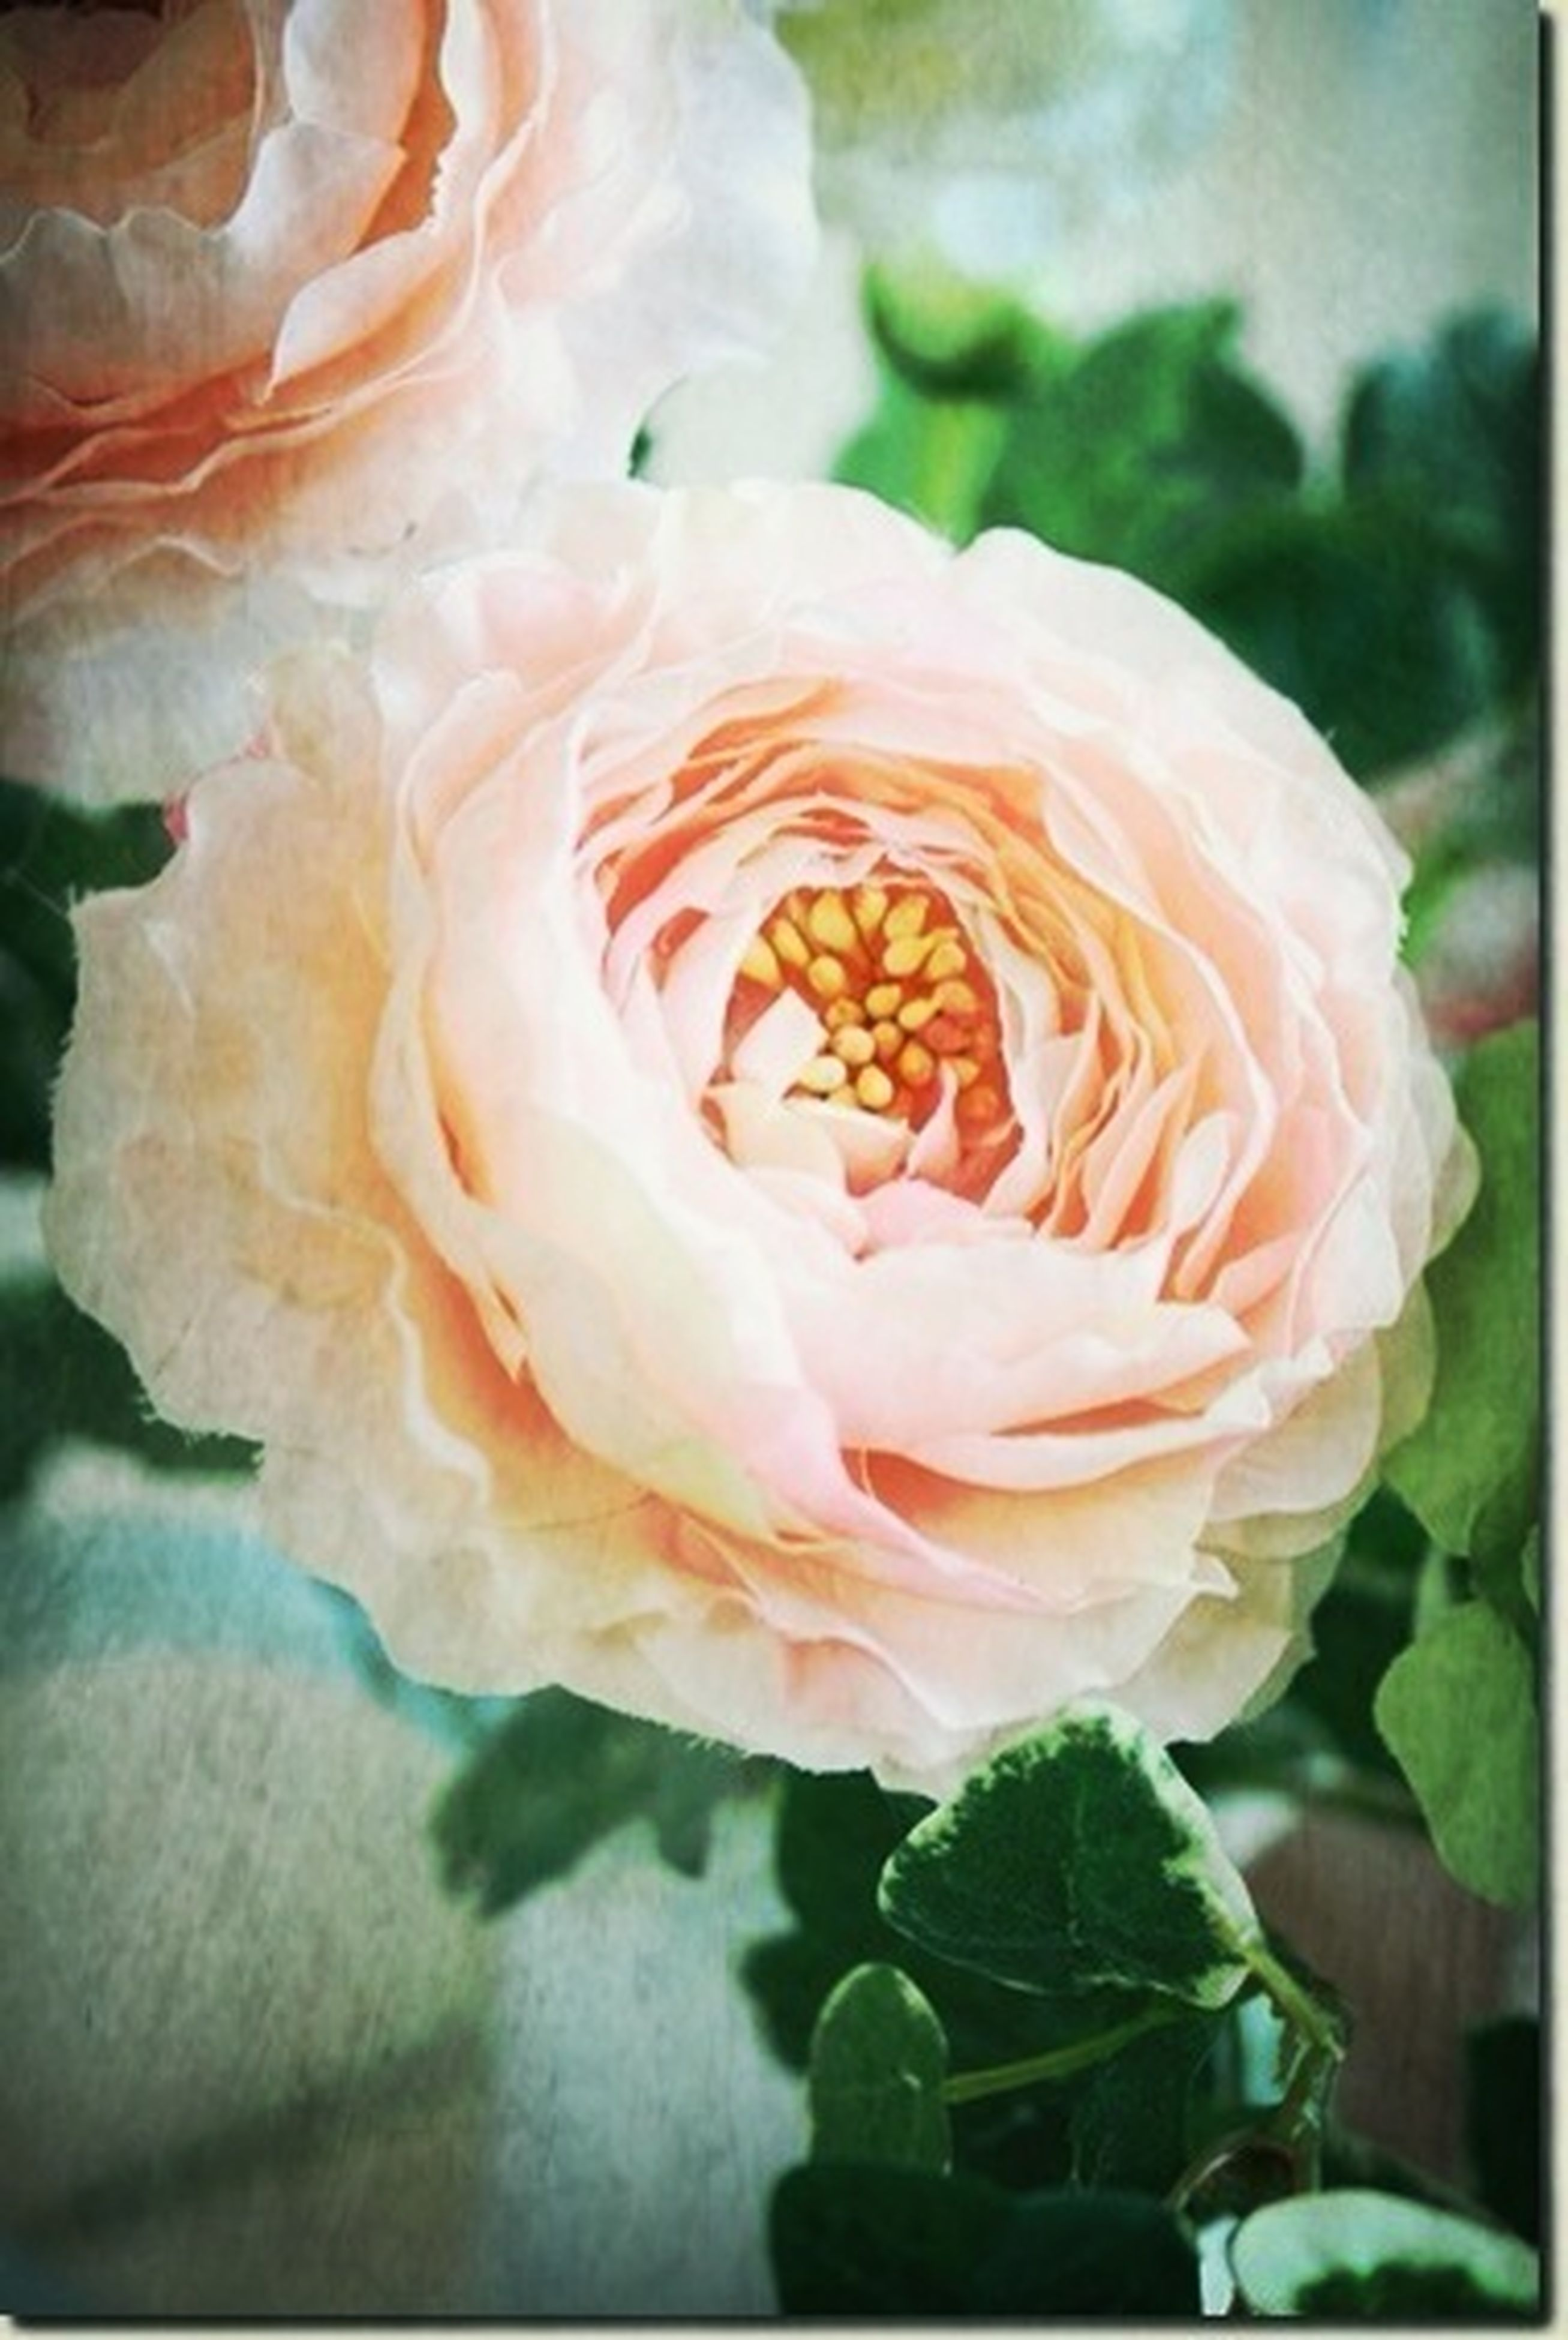 flower, petal, flower head, fragility, freshness, rose - flower, beauty in nature, close-up, nature, blooming, growth, single flower, plant, focus on foreground, in bloom, rose, white color, no people, natural pattern, day